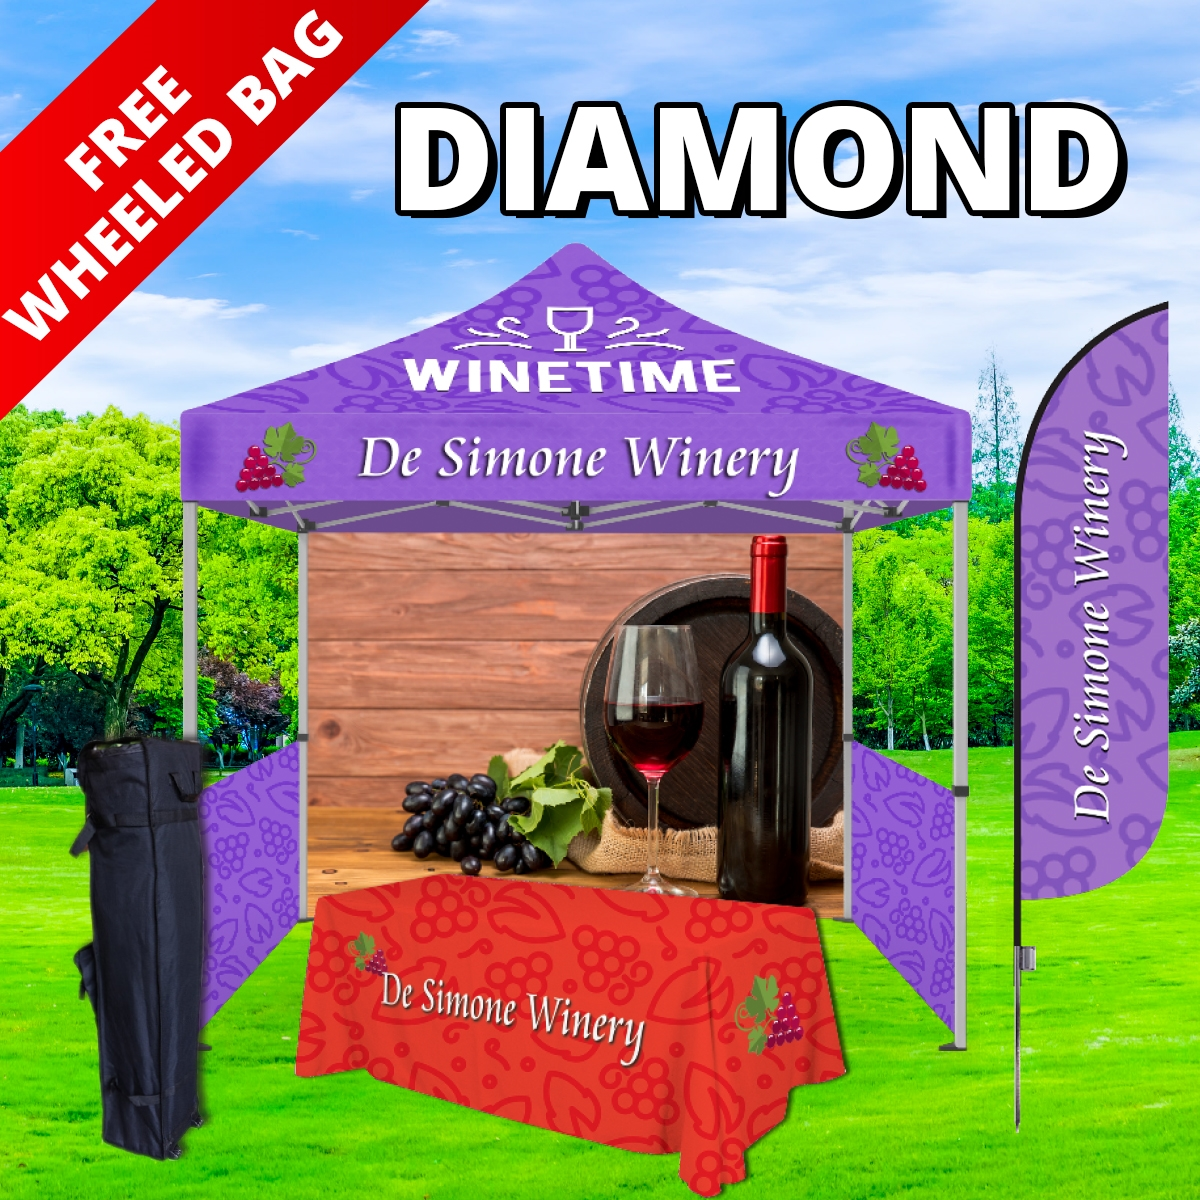 Diamond Tier Event Package - 10Ft. Steel Tent with Full Color Dye Sublimated (1) 6ft Table Throw, (1) Canopy, (1) Back Wall and (2) Side Walls with (2) Rails (1) 8.5 Ft. Single Sided with Spike(1) Free Wheeled Bag